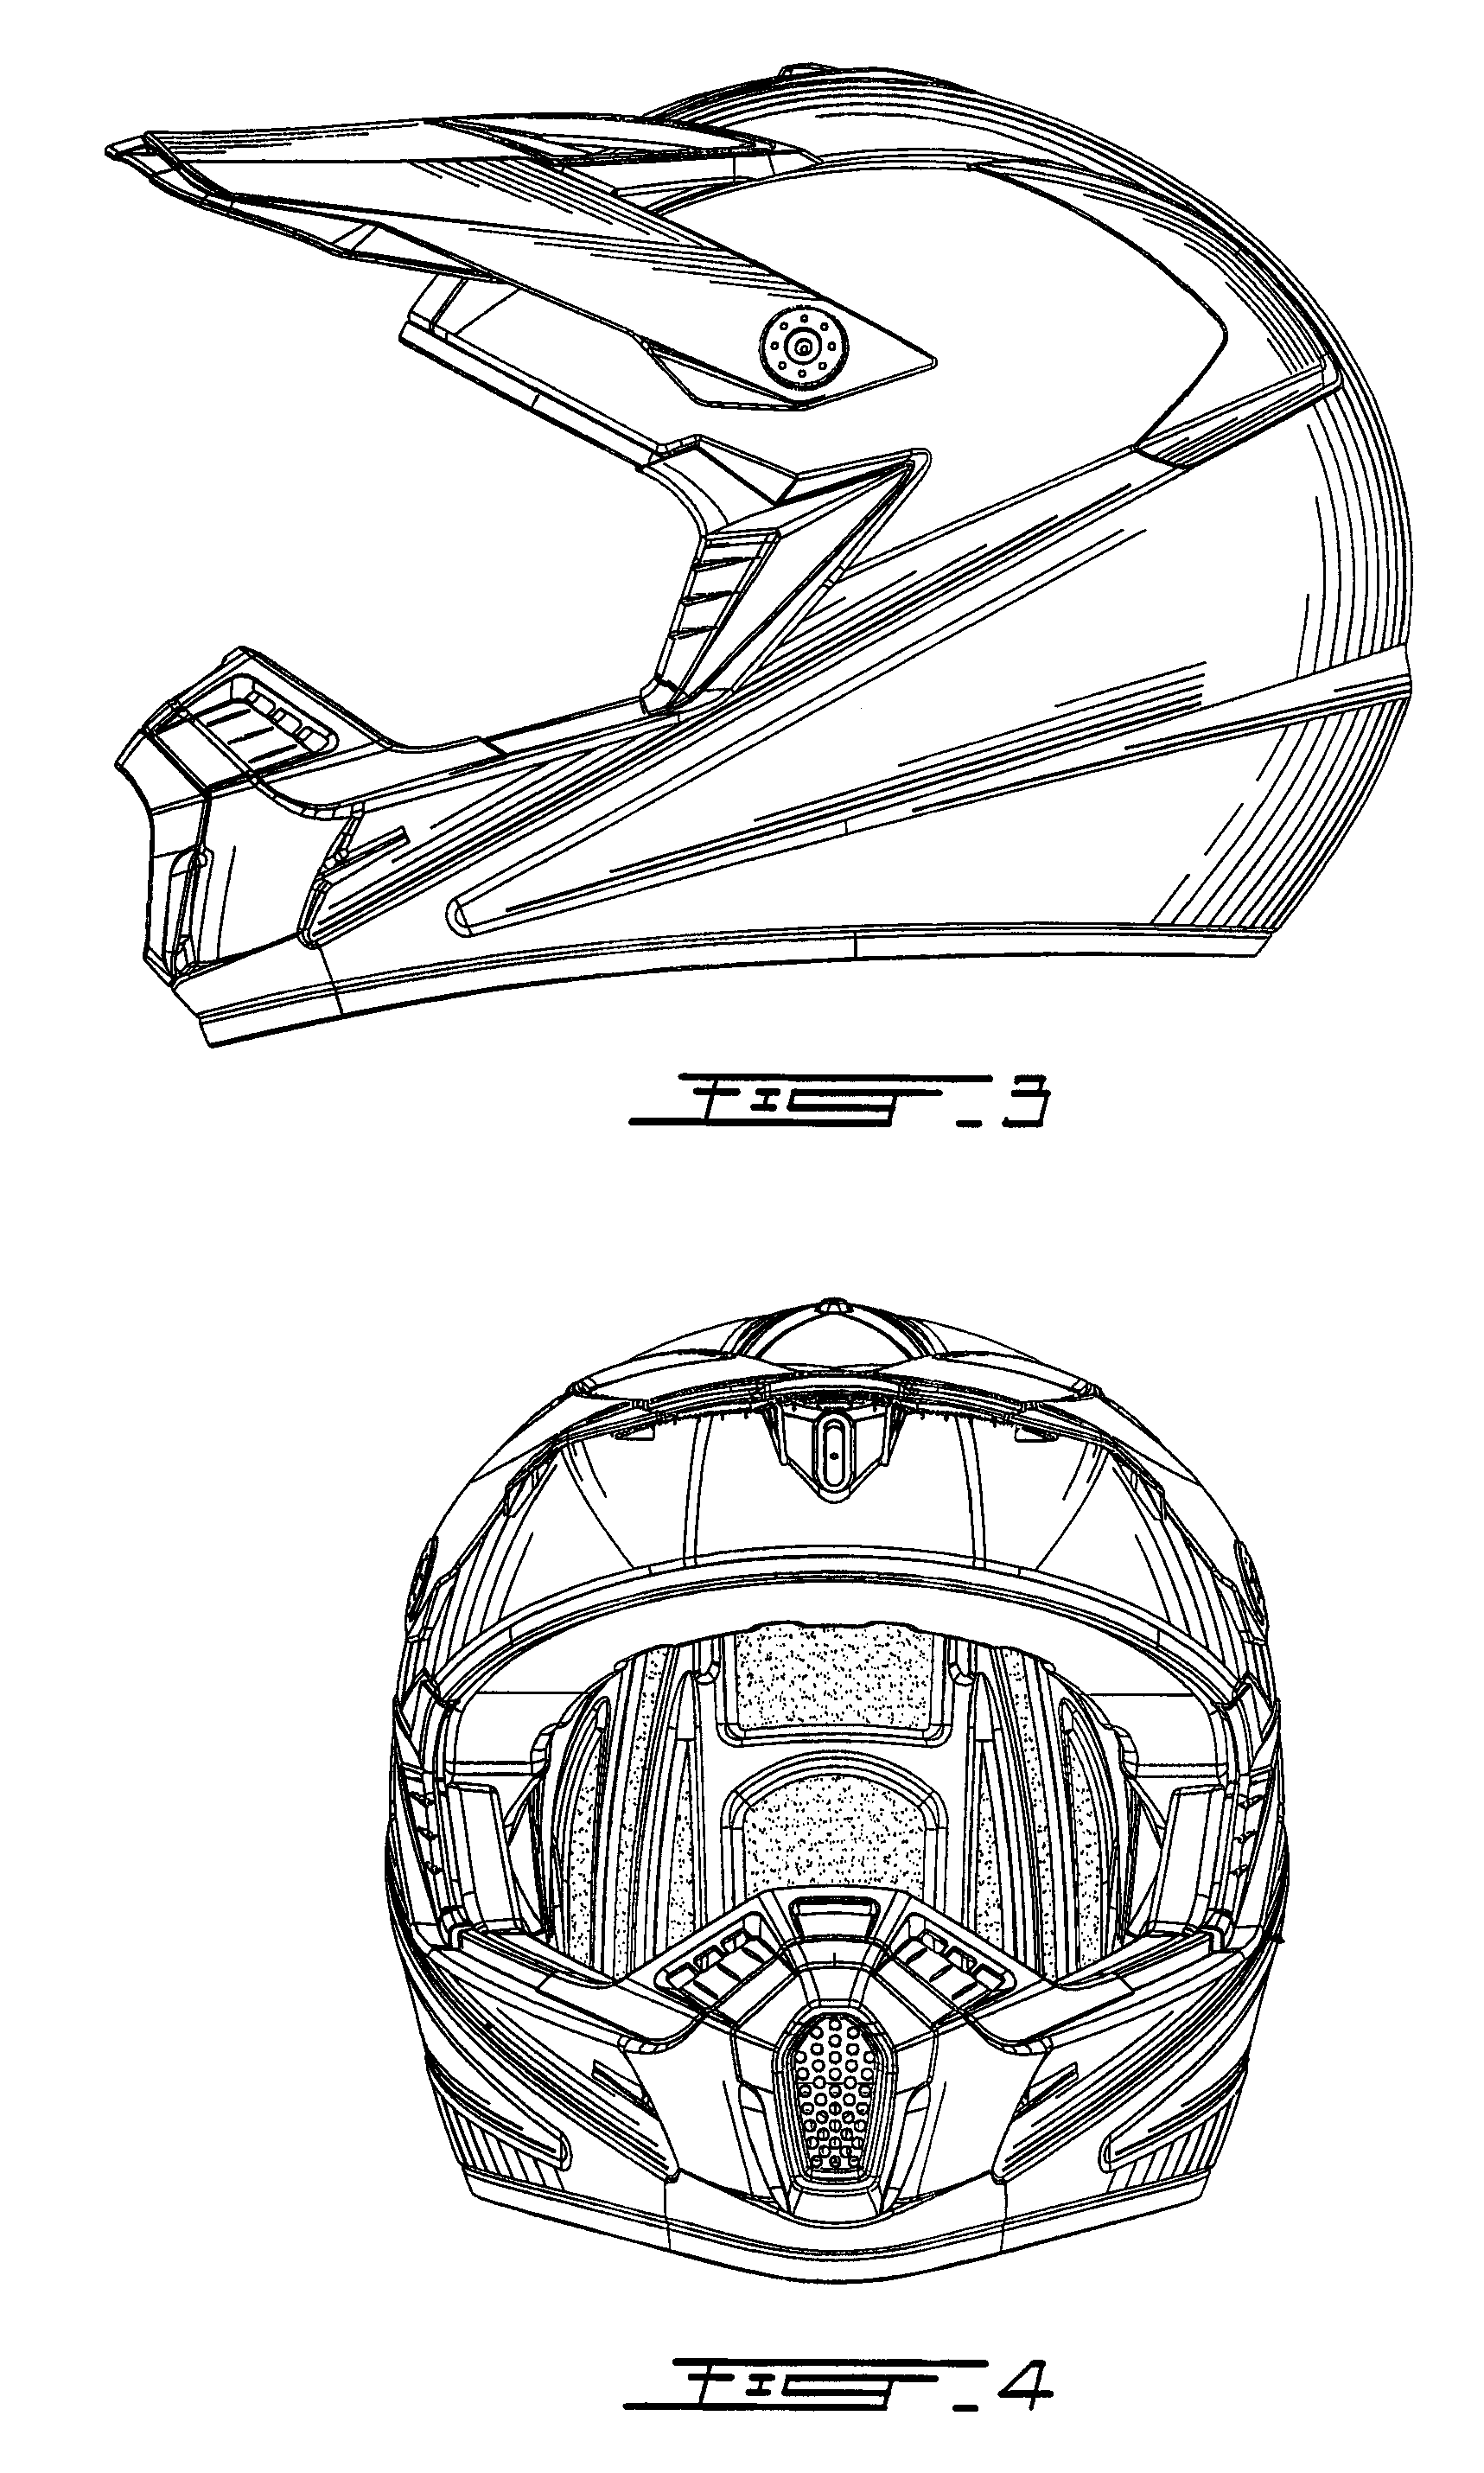 How To Draw A Dirt Bike Helmet Easy